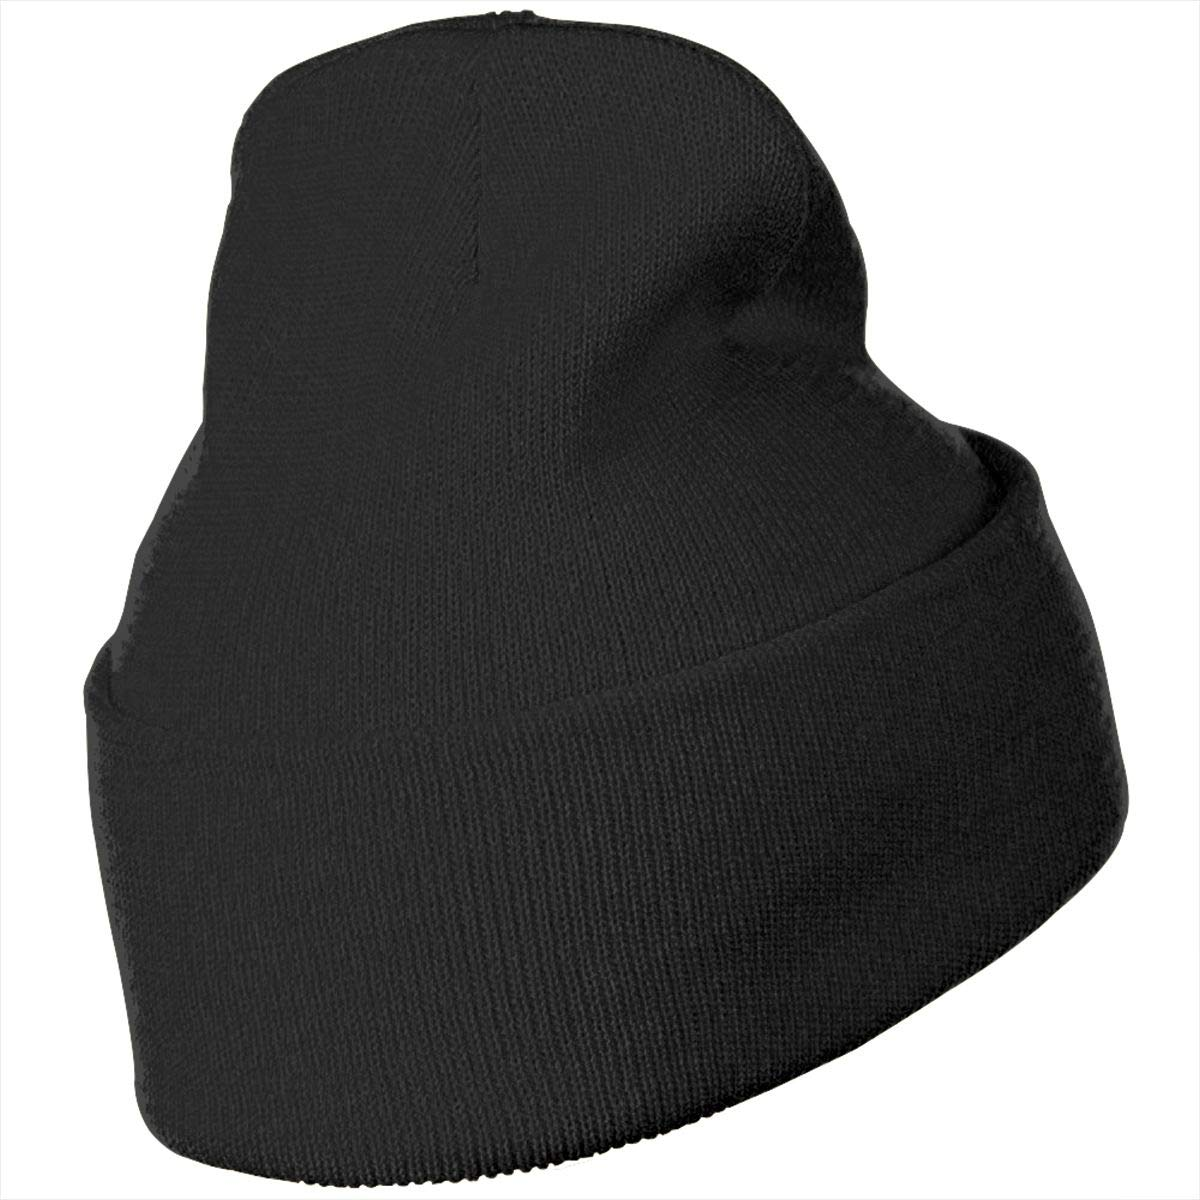 Rainbow Pride LGBT Warm Winter Hat Knit Beanie Skull Cap Cuff Beanie Hat Winter Hats for Men /& Women